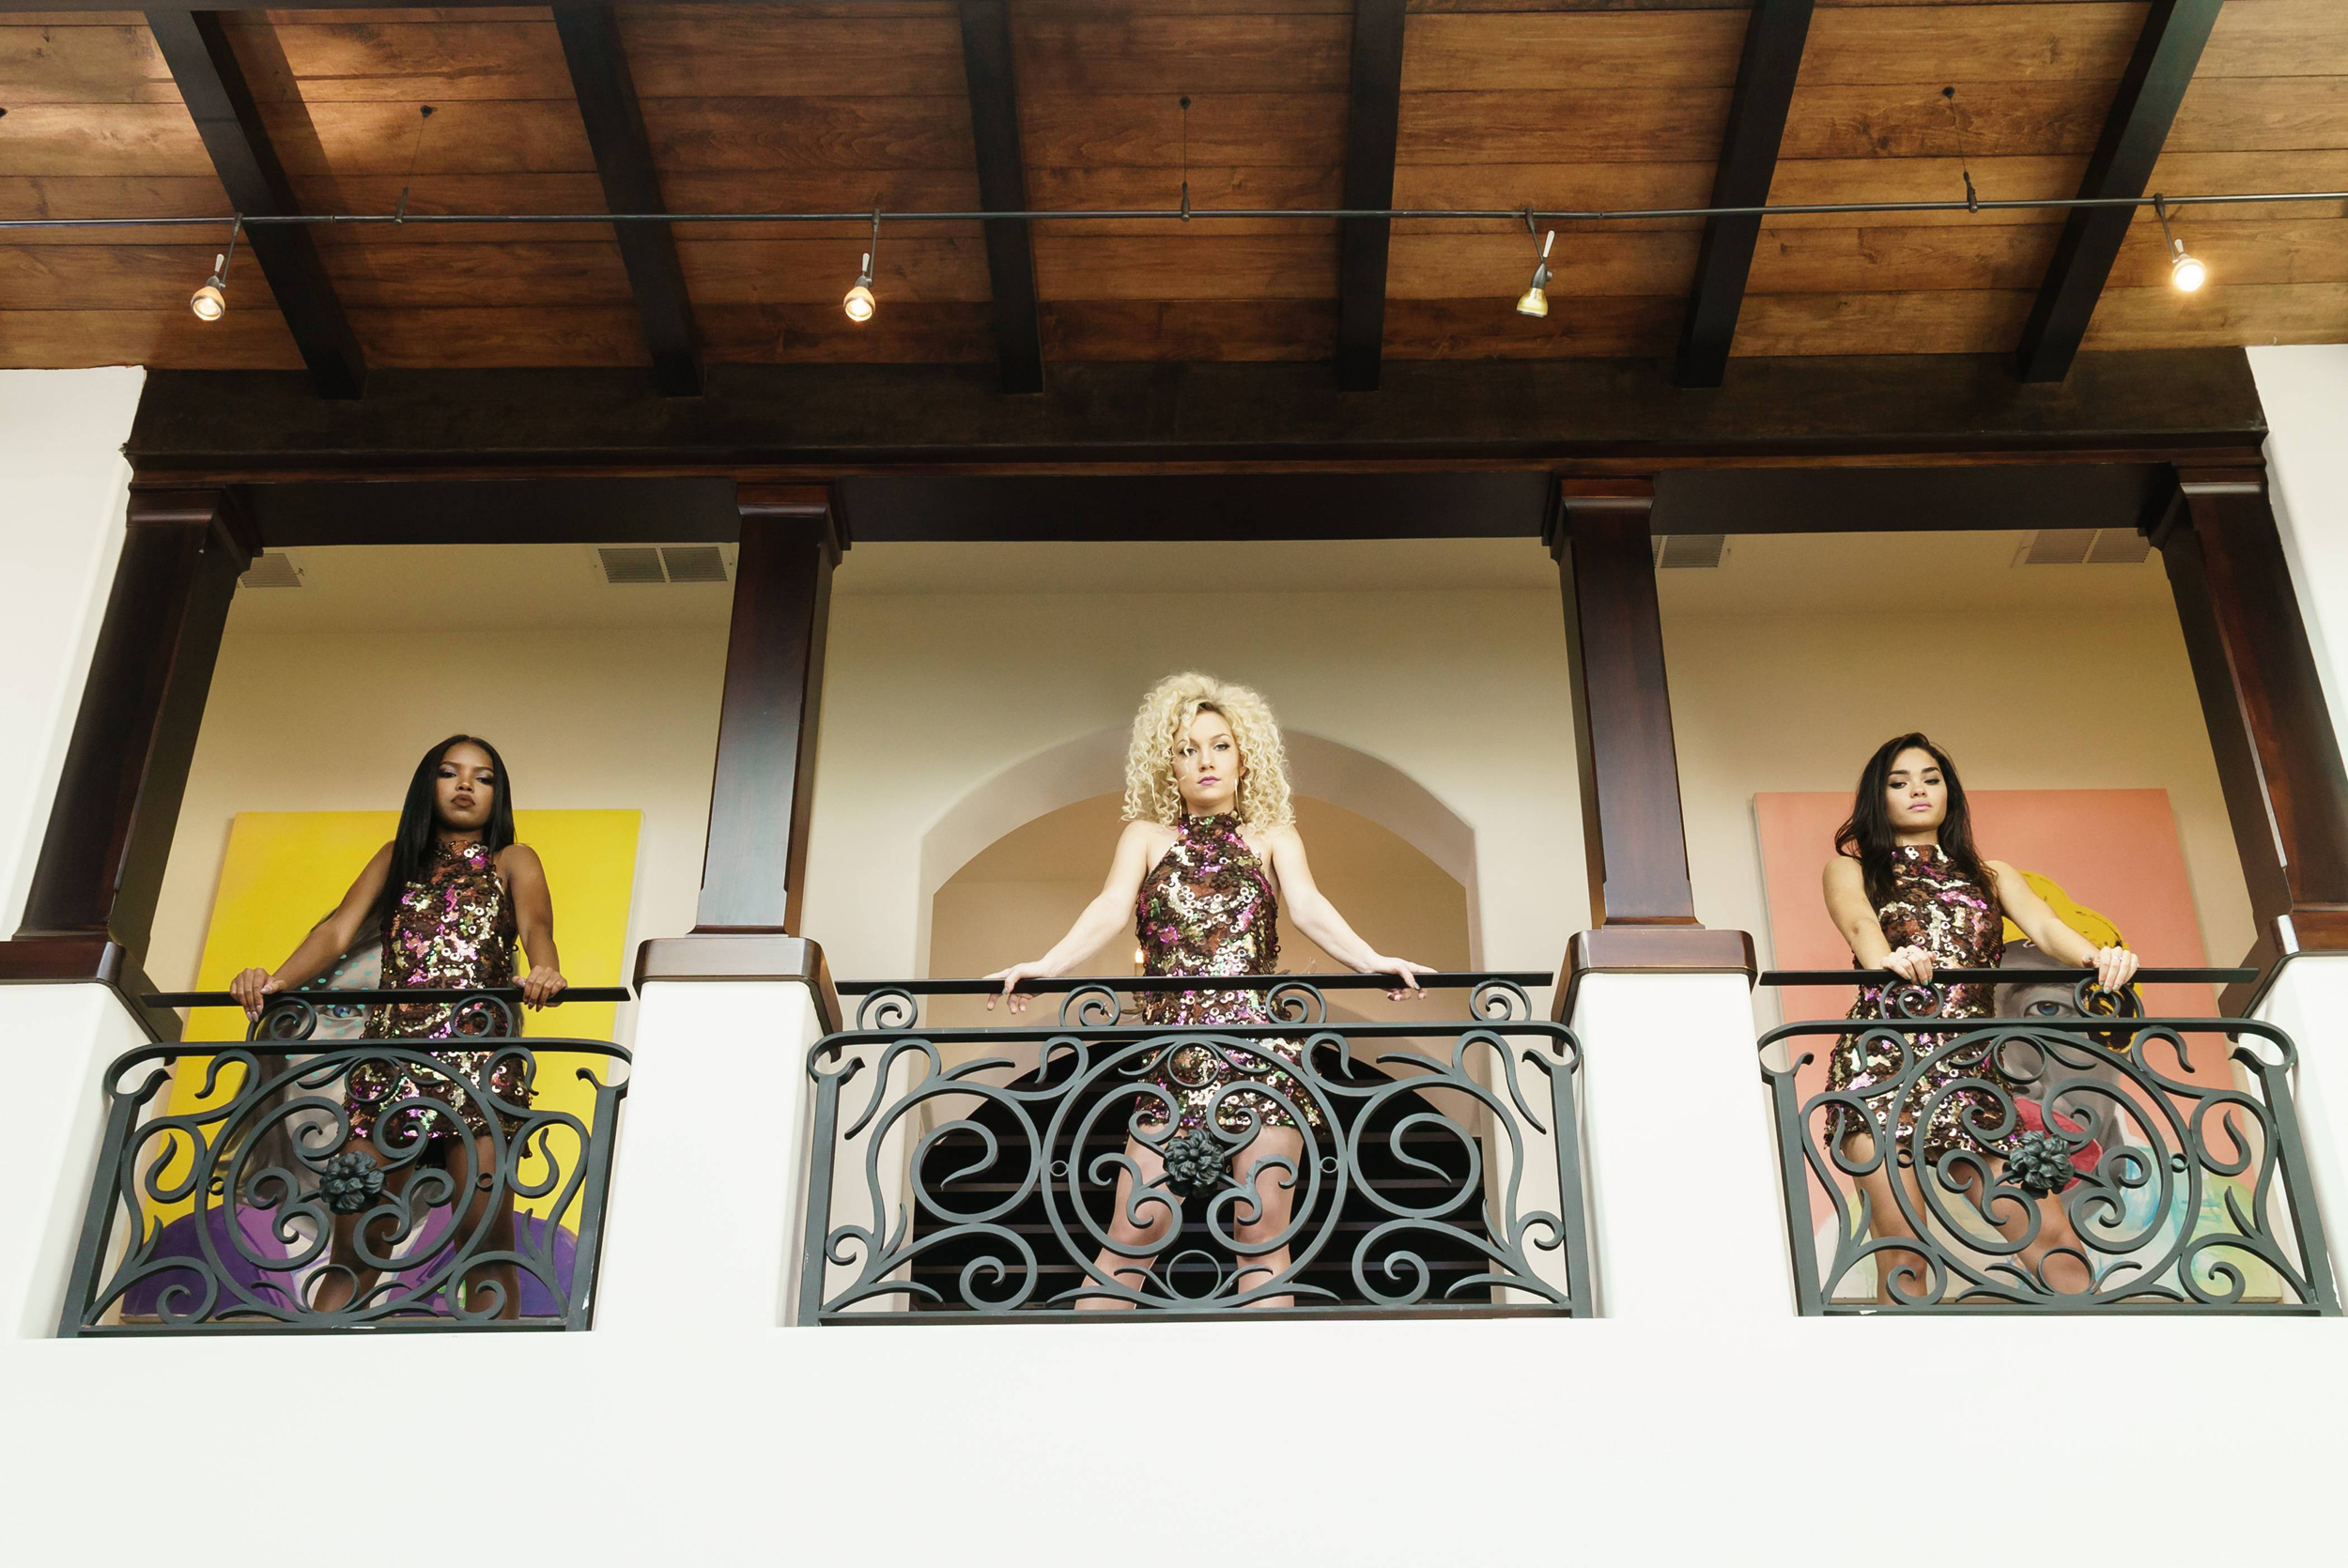 STAR: Pictured L-R: Ryan Destiny, Jude Demorest and Brittany O'Grady in the special premiere of STAR airing Wednesday, Dec. 14.